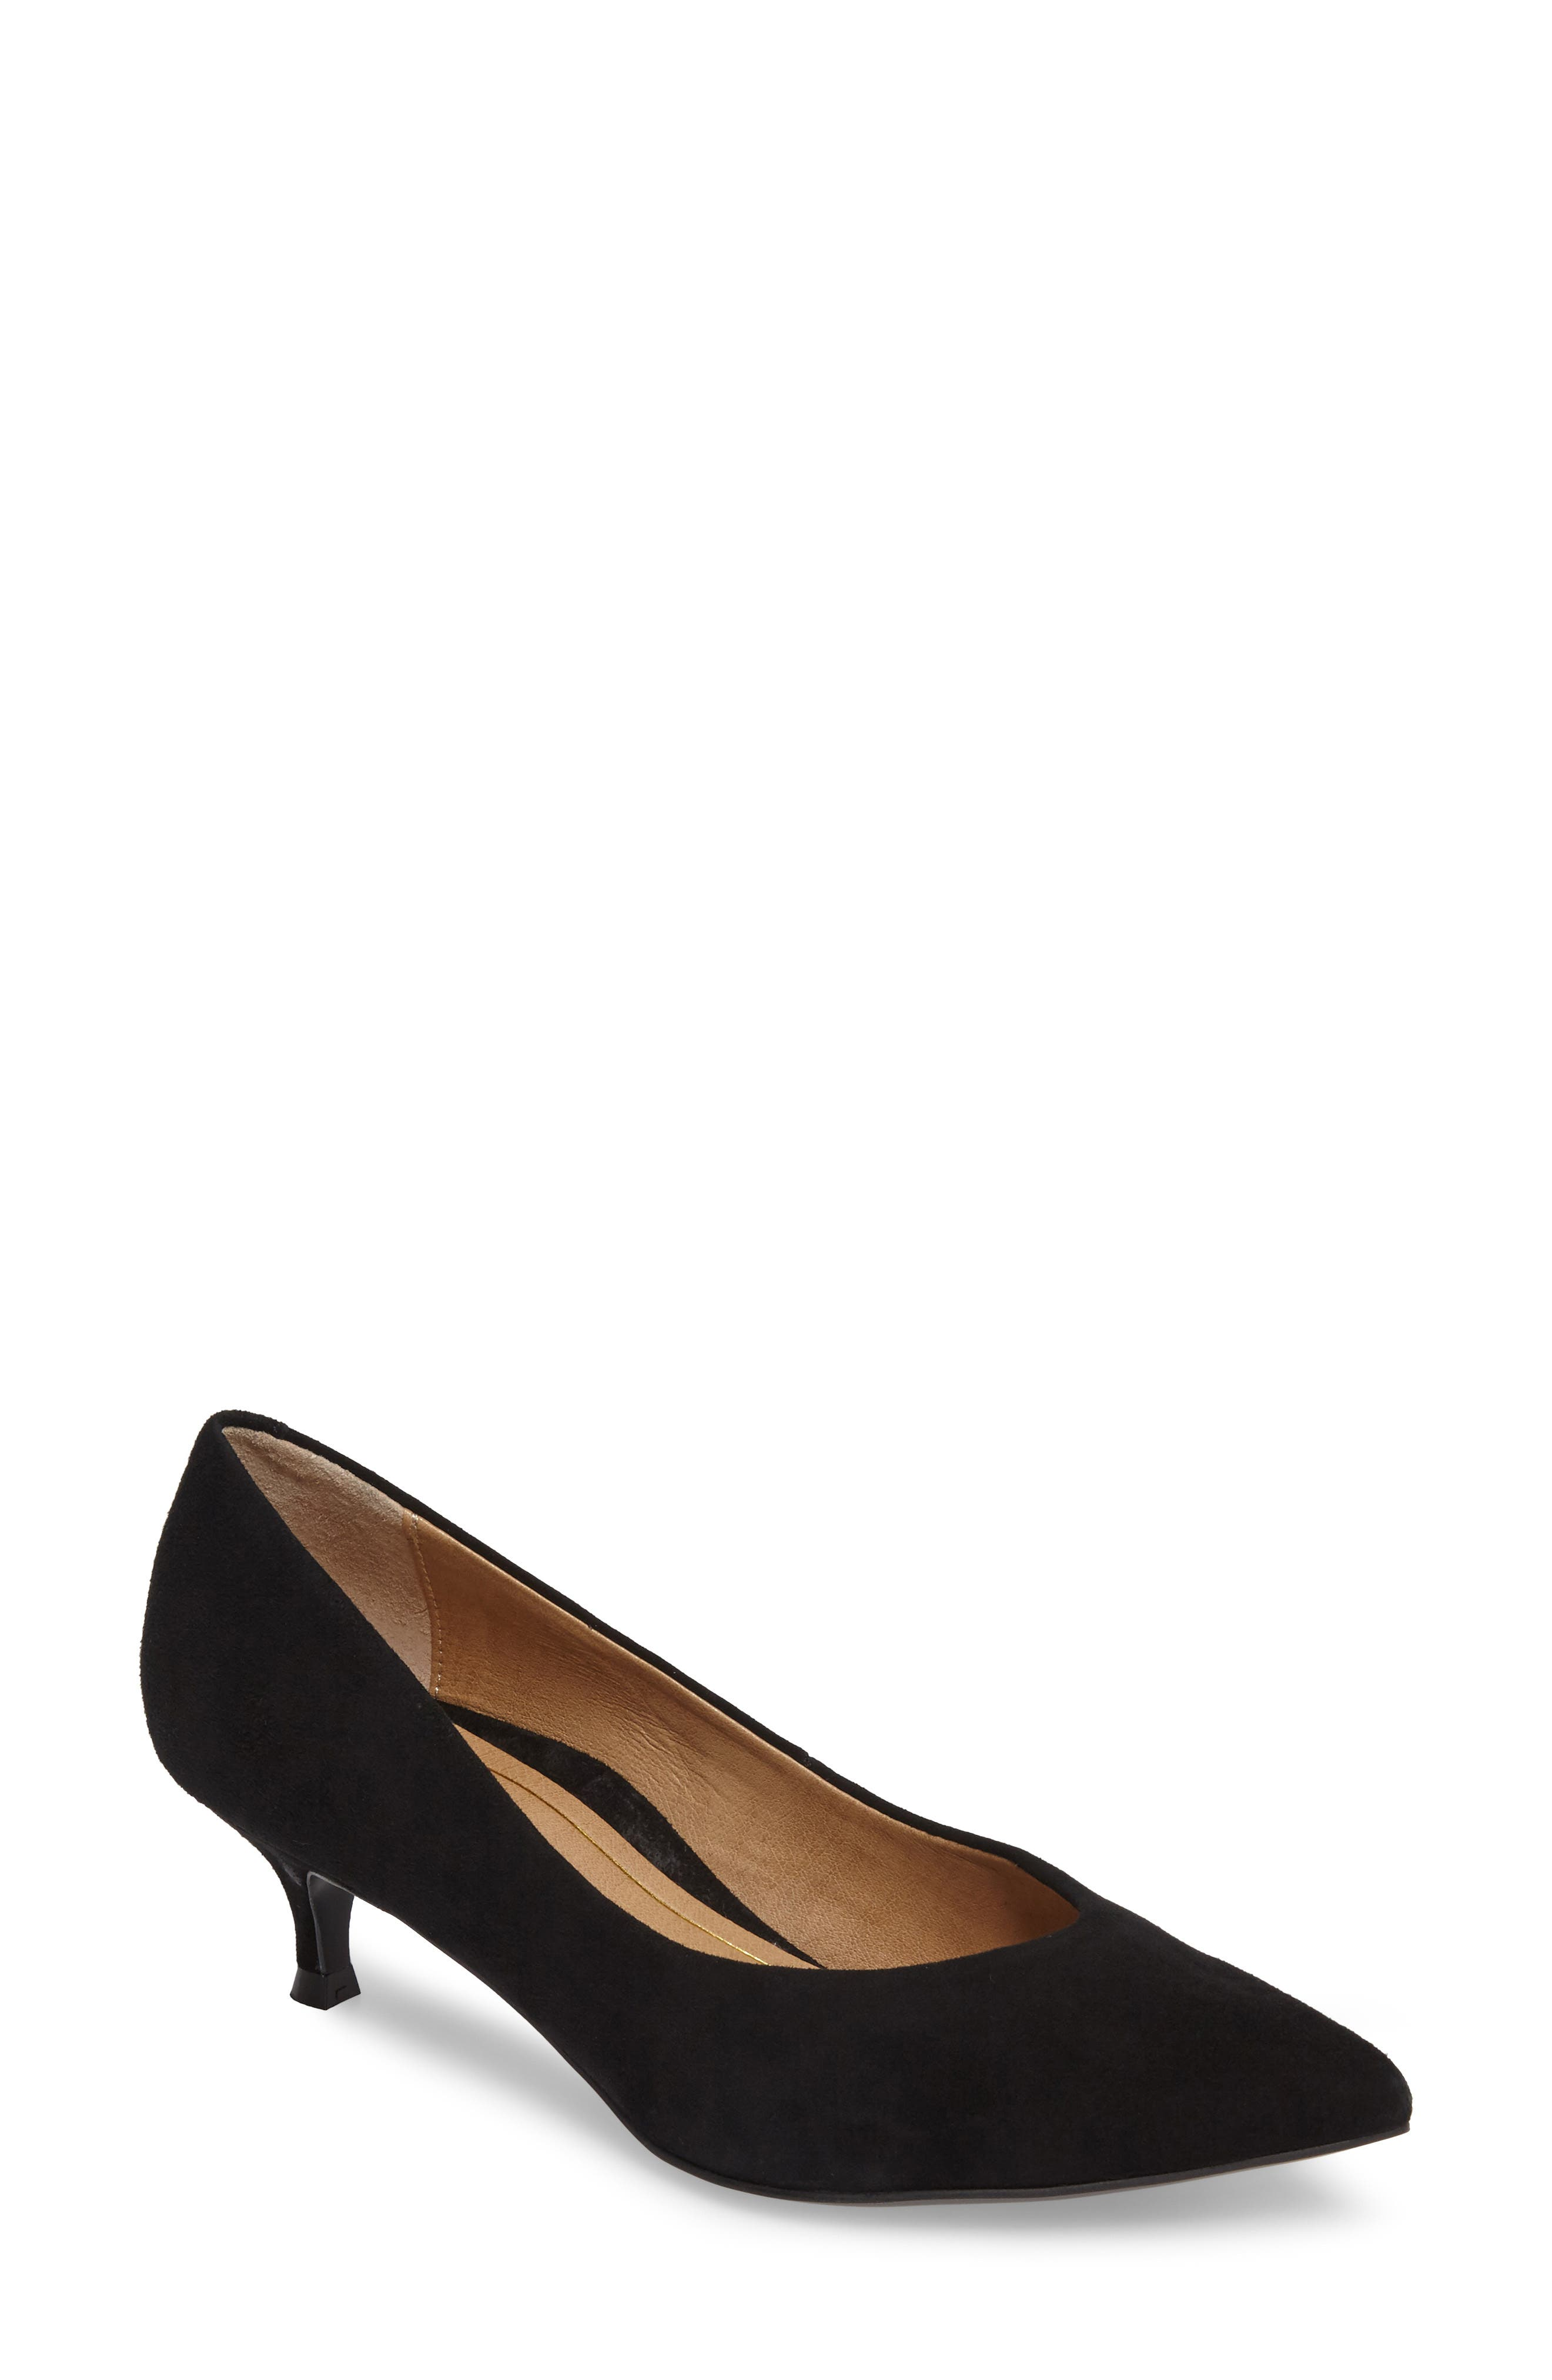 Josie Kitten Heel Pump,                             Main thumbnail 1, color,                             BLACK SUEDE